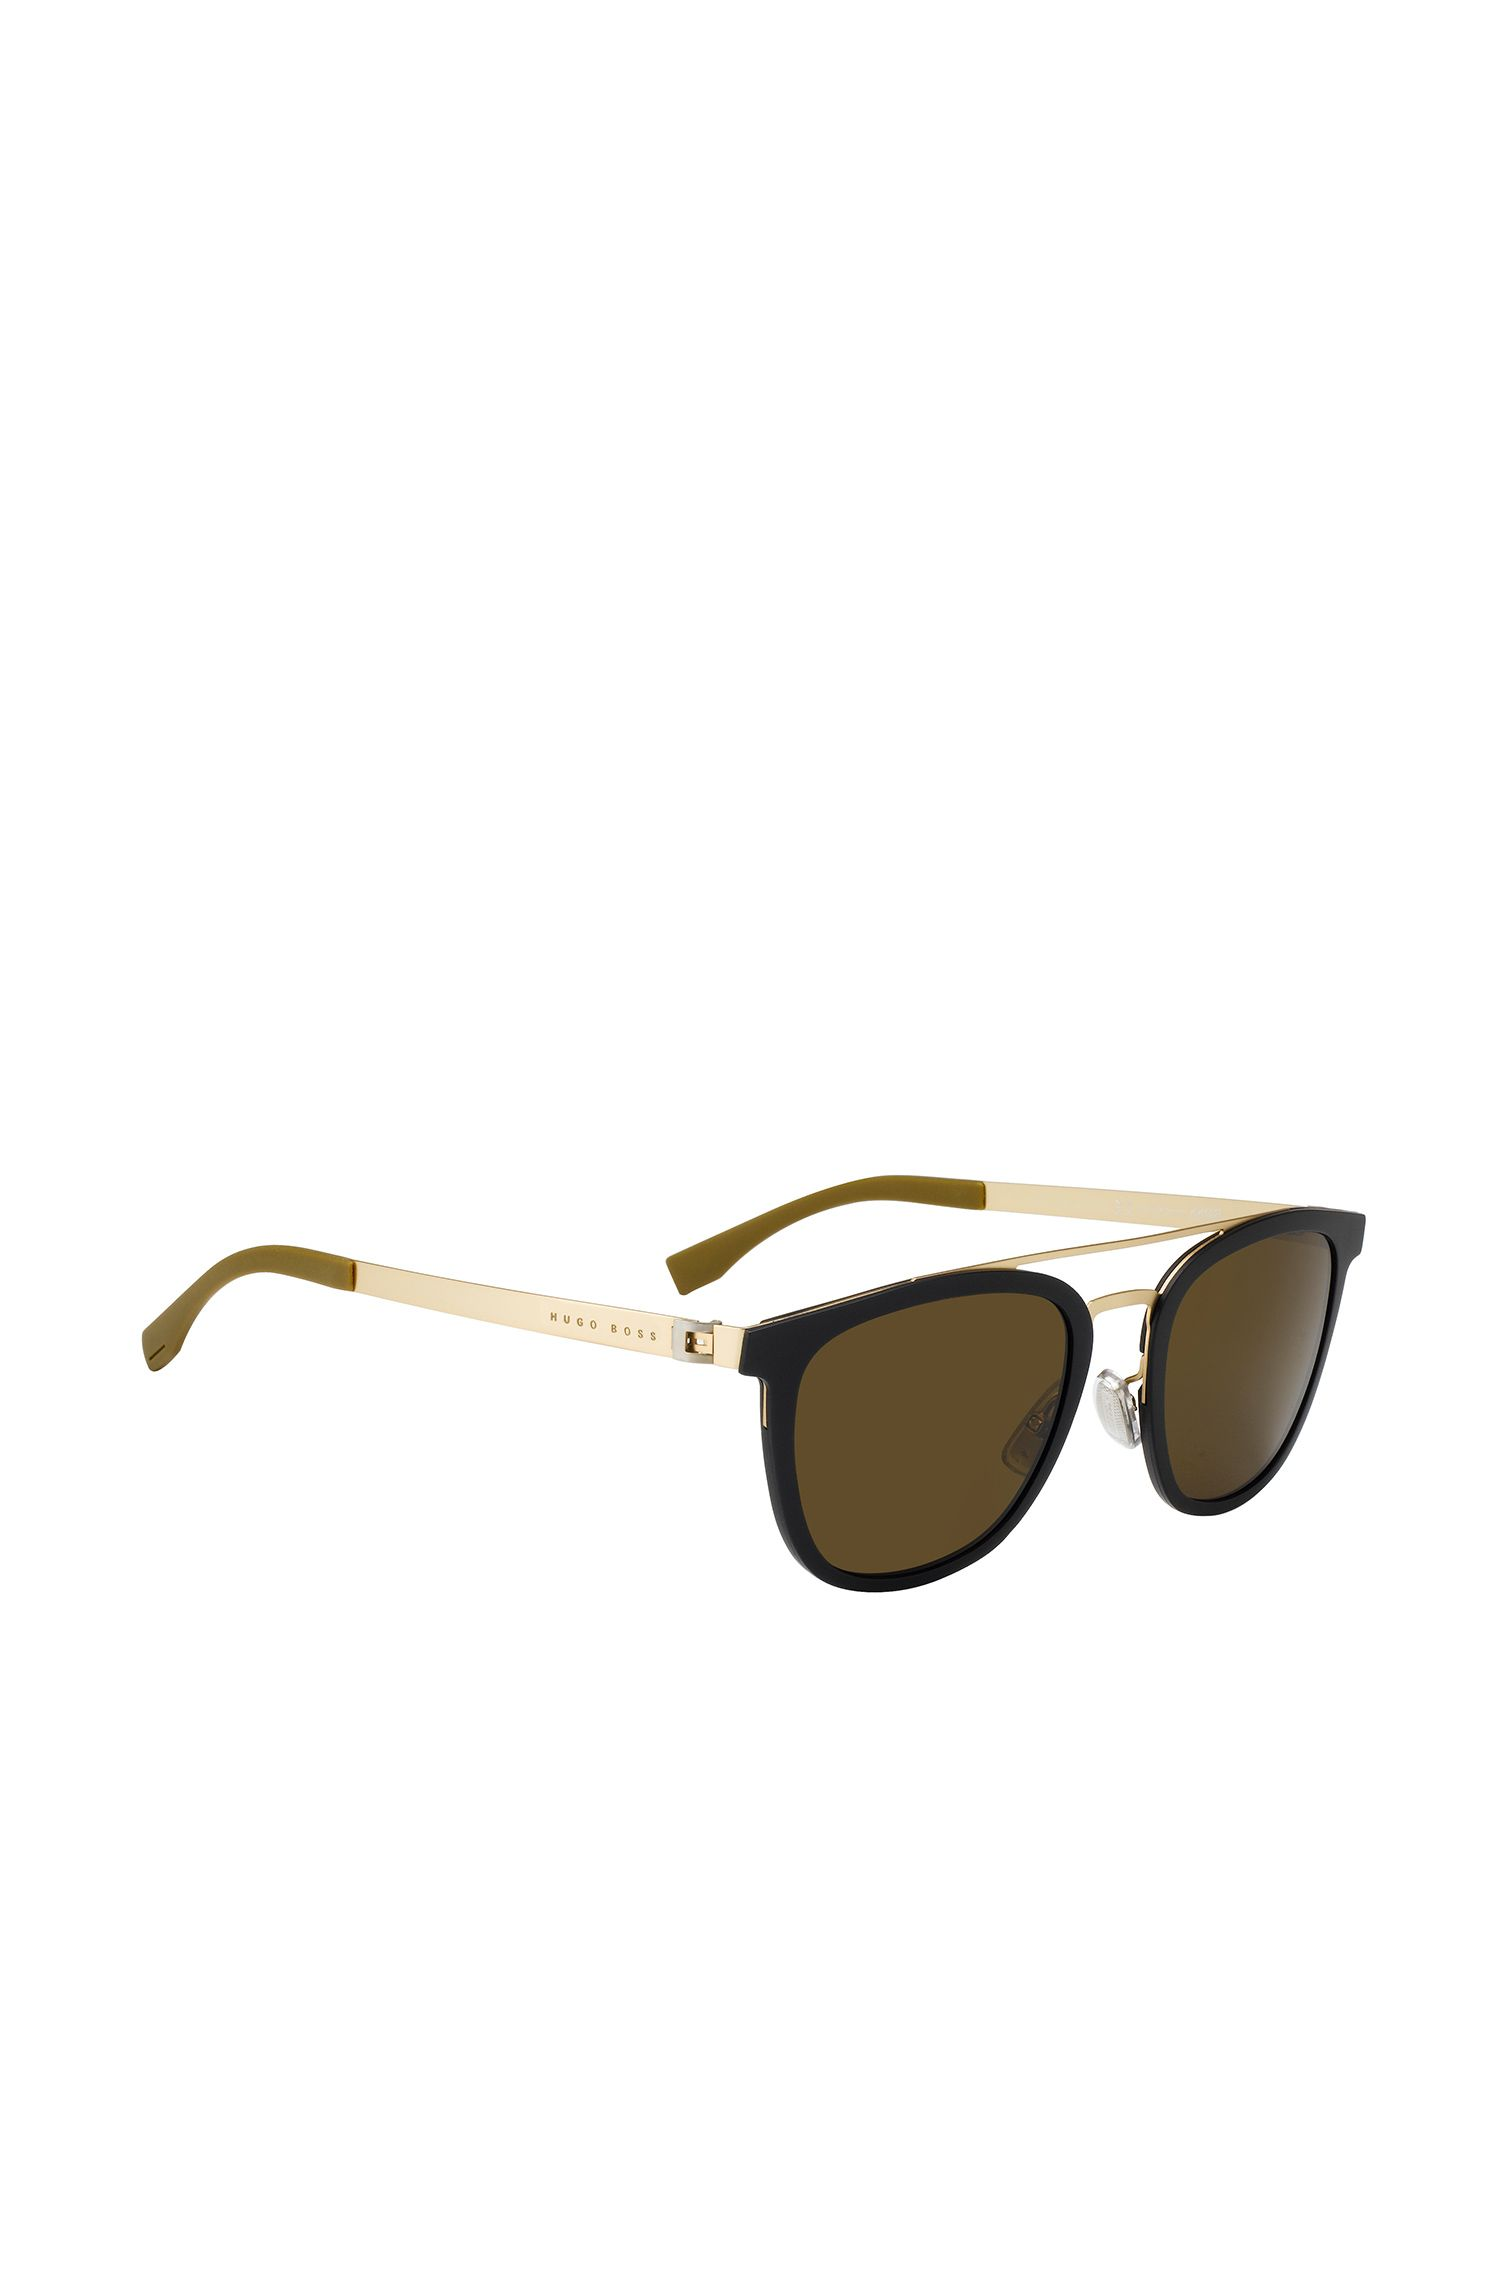 Gold Tone Stainless Steel Round Sunglasses | BOSS 0838